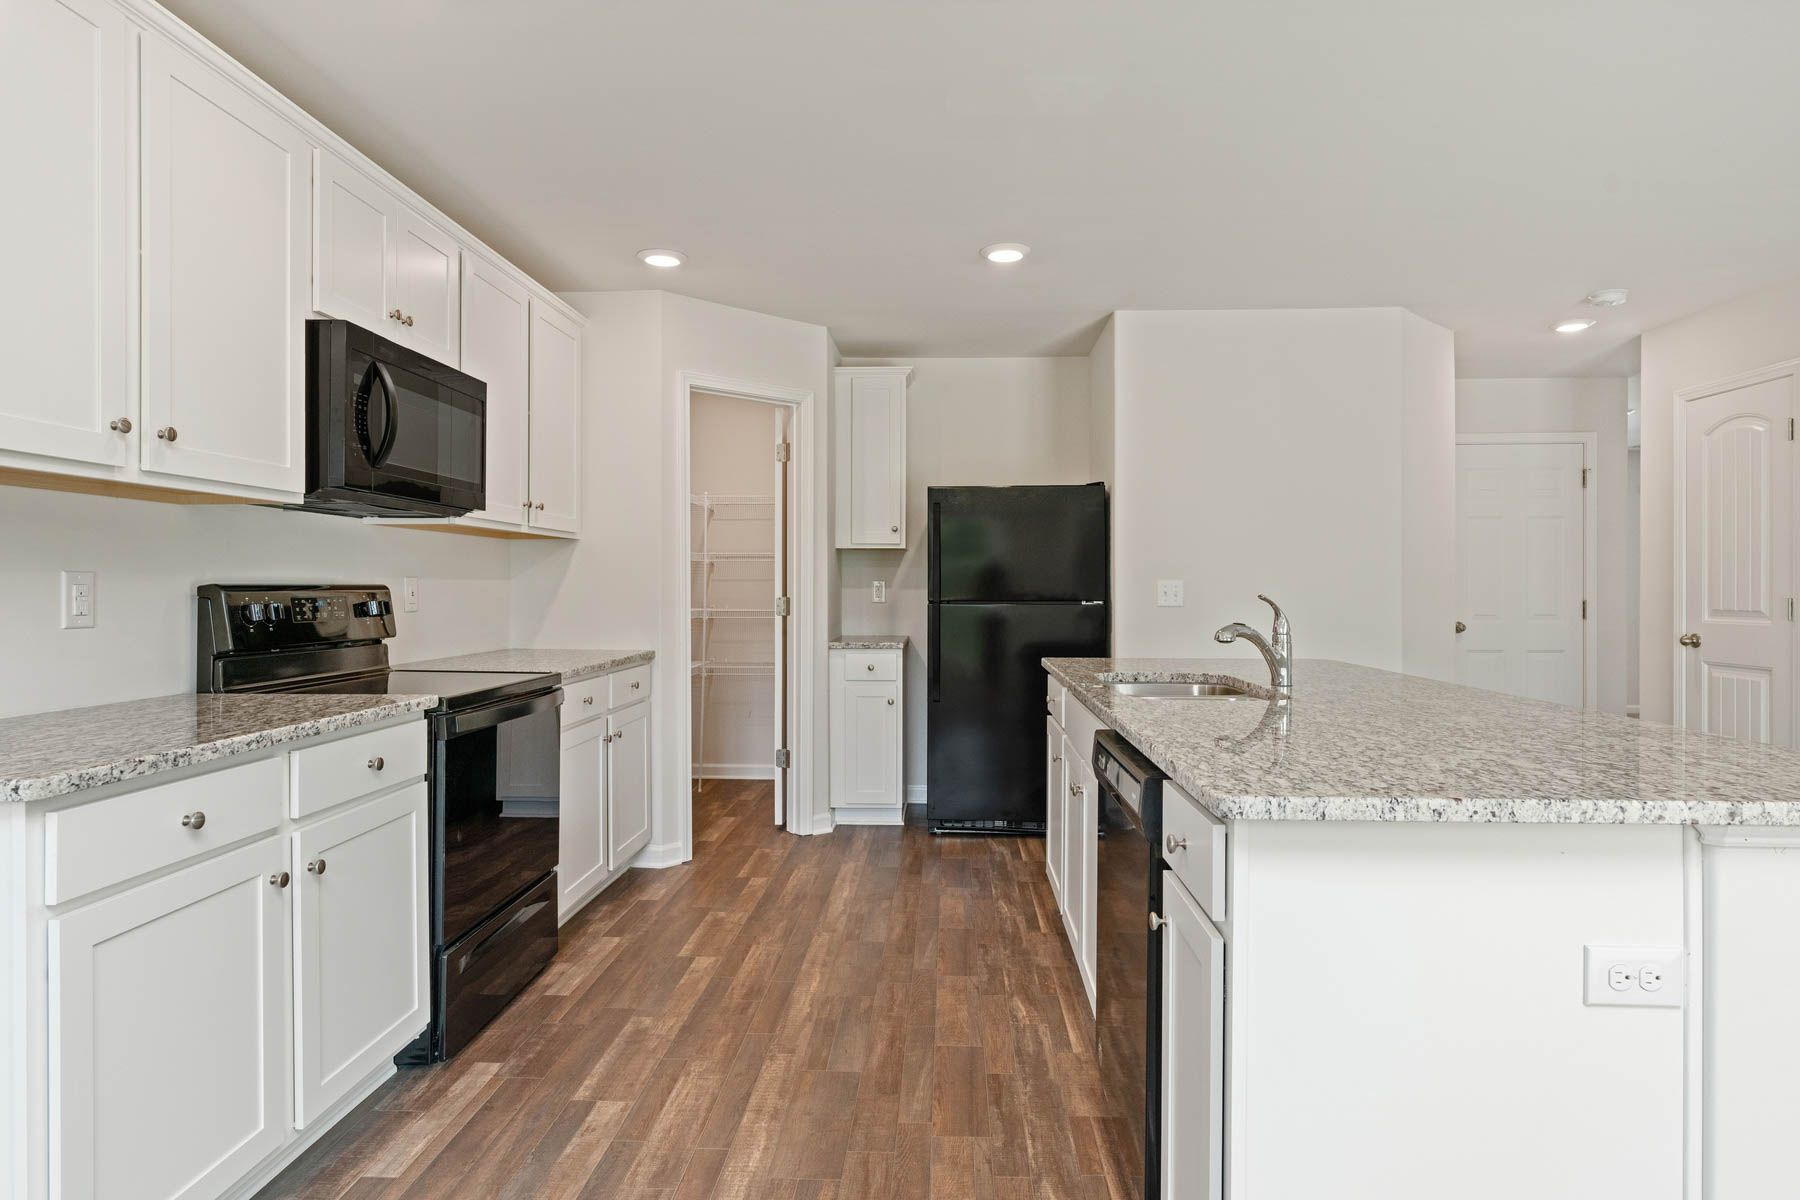 Kitchen featured in the Hartford By LGI Homes in Jacksonville, NC